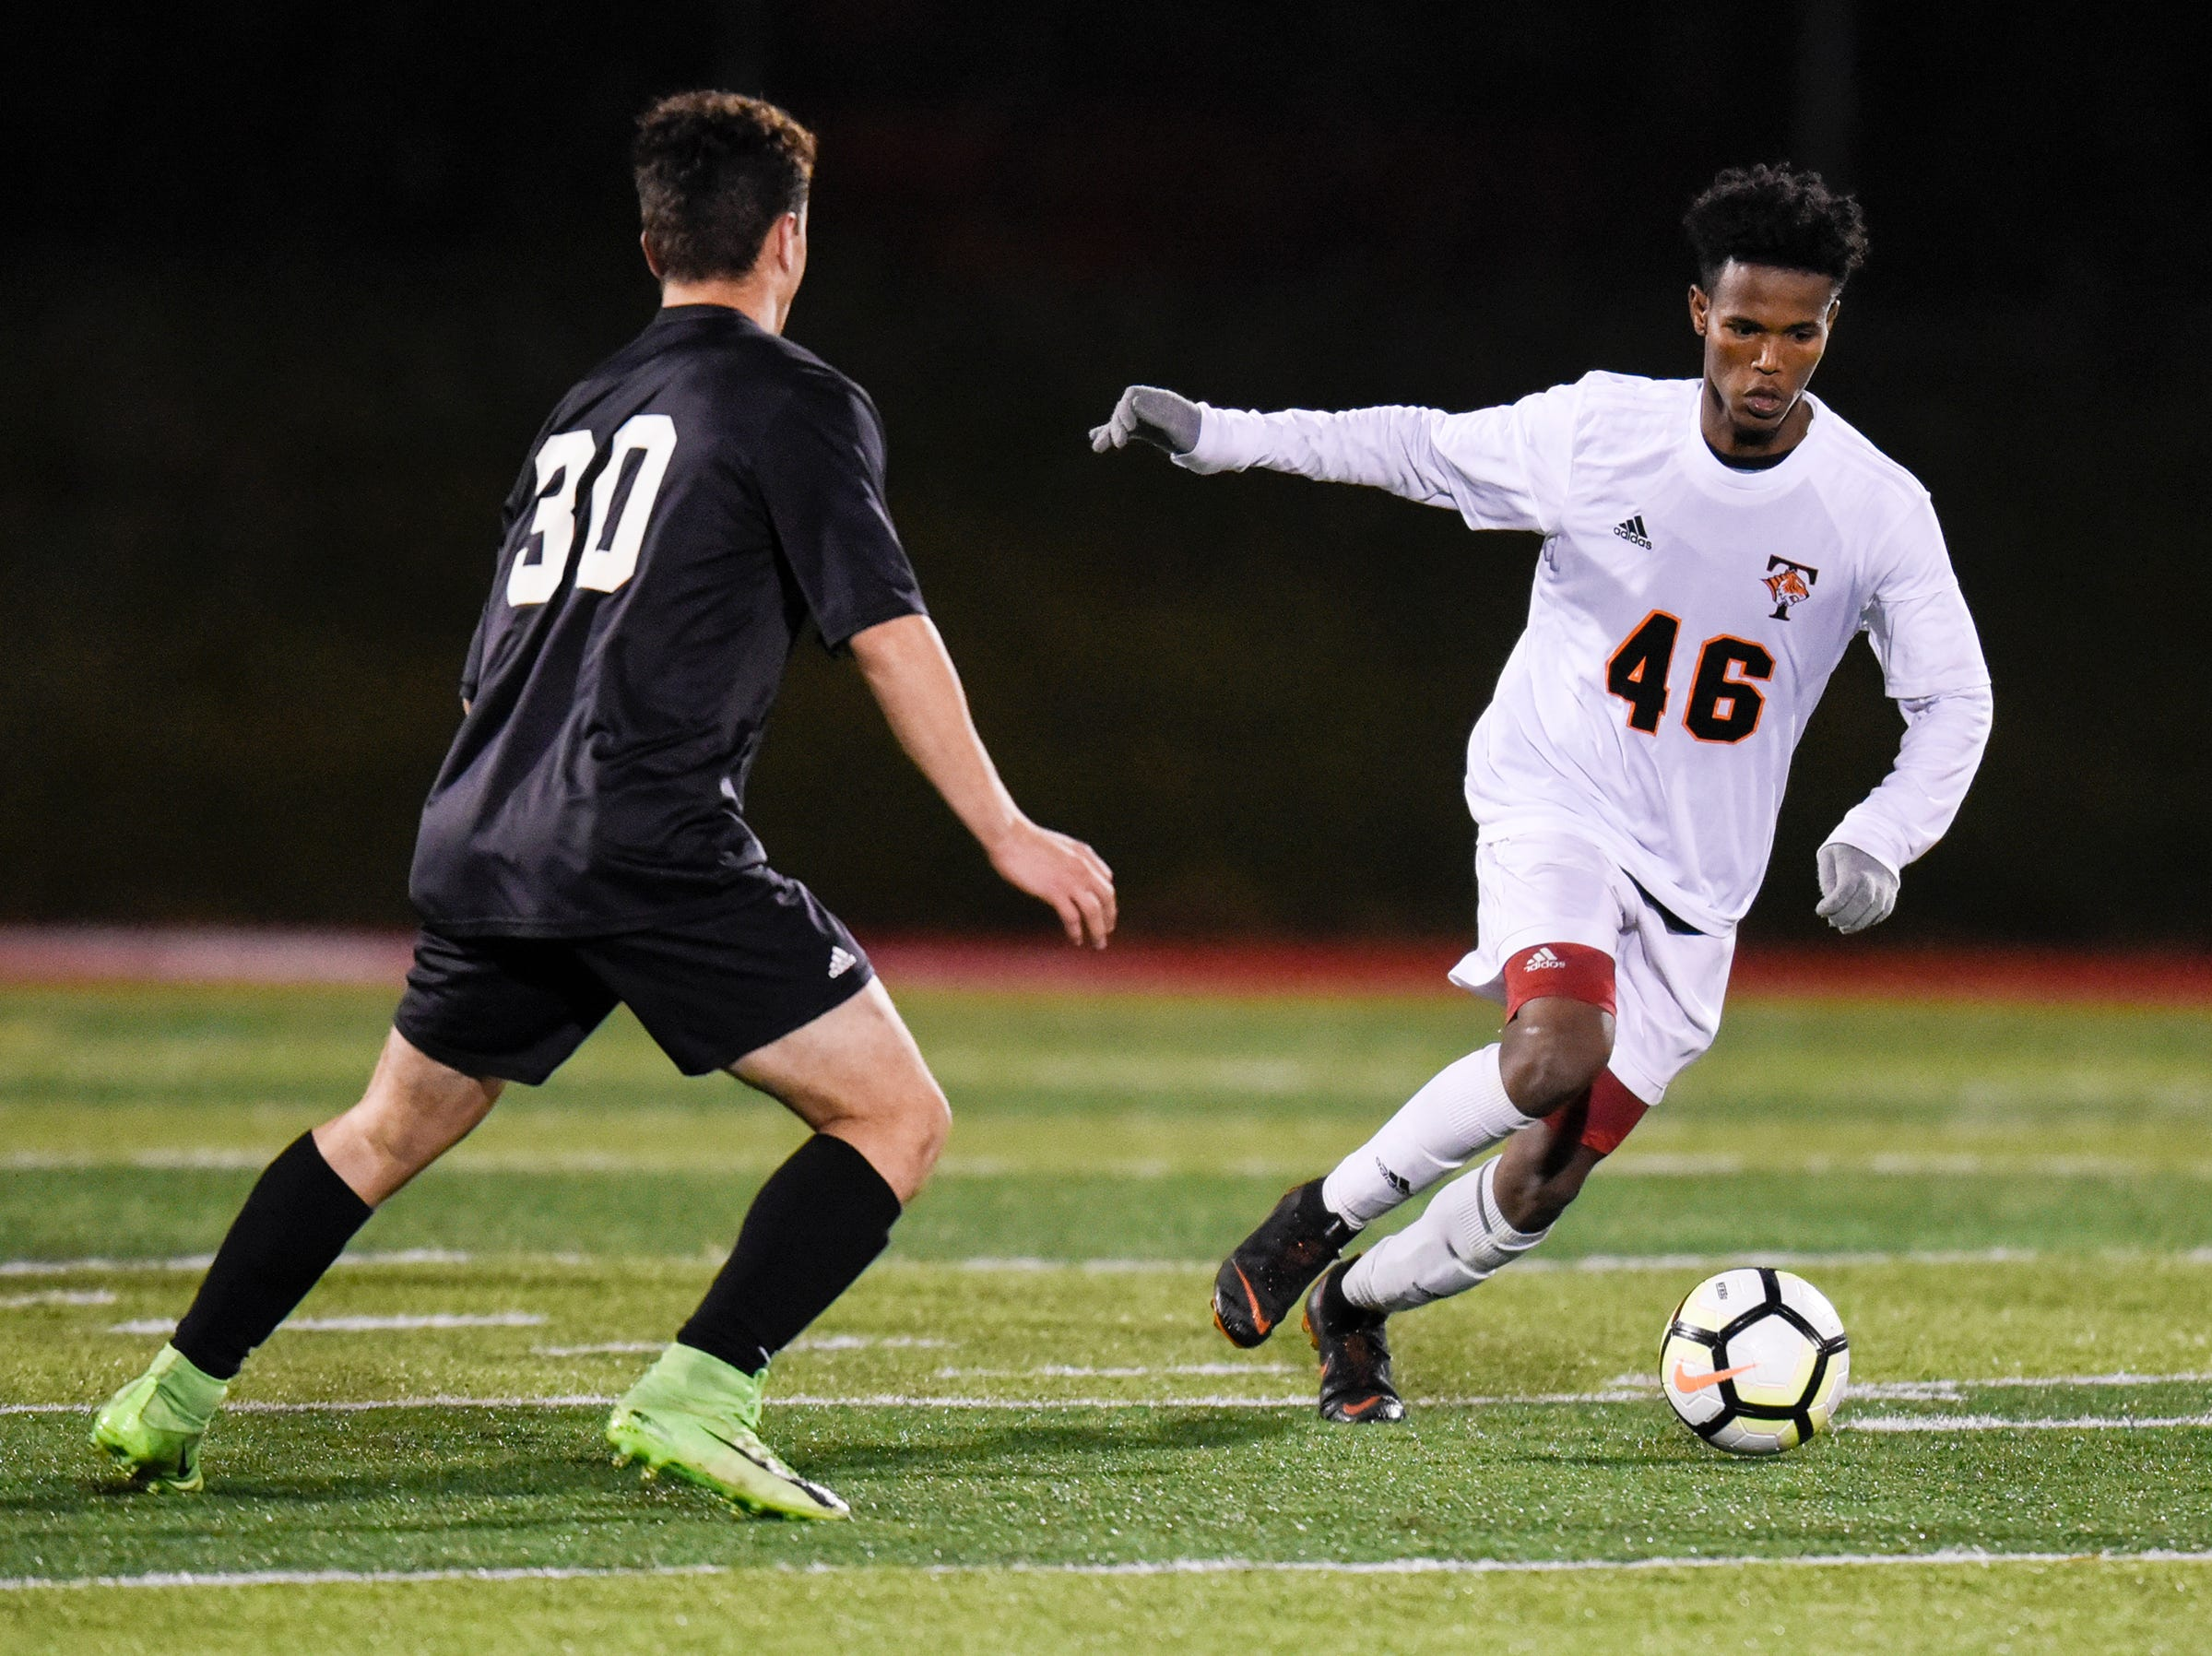 Tech's Keyse Elmi controls the ball during the Thursday, Oct. 25, Class 2A state quarterfinal game against St. Paul Central at Husky Stadium in St. Cloud.